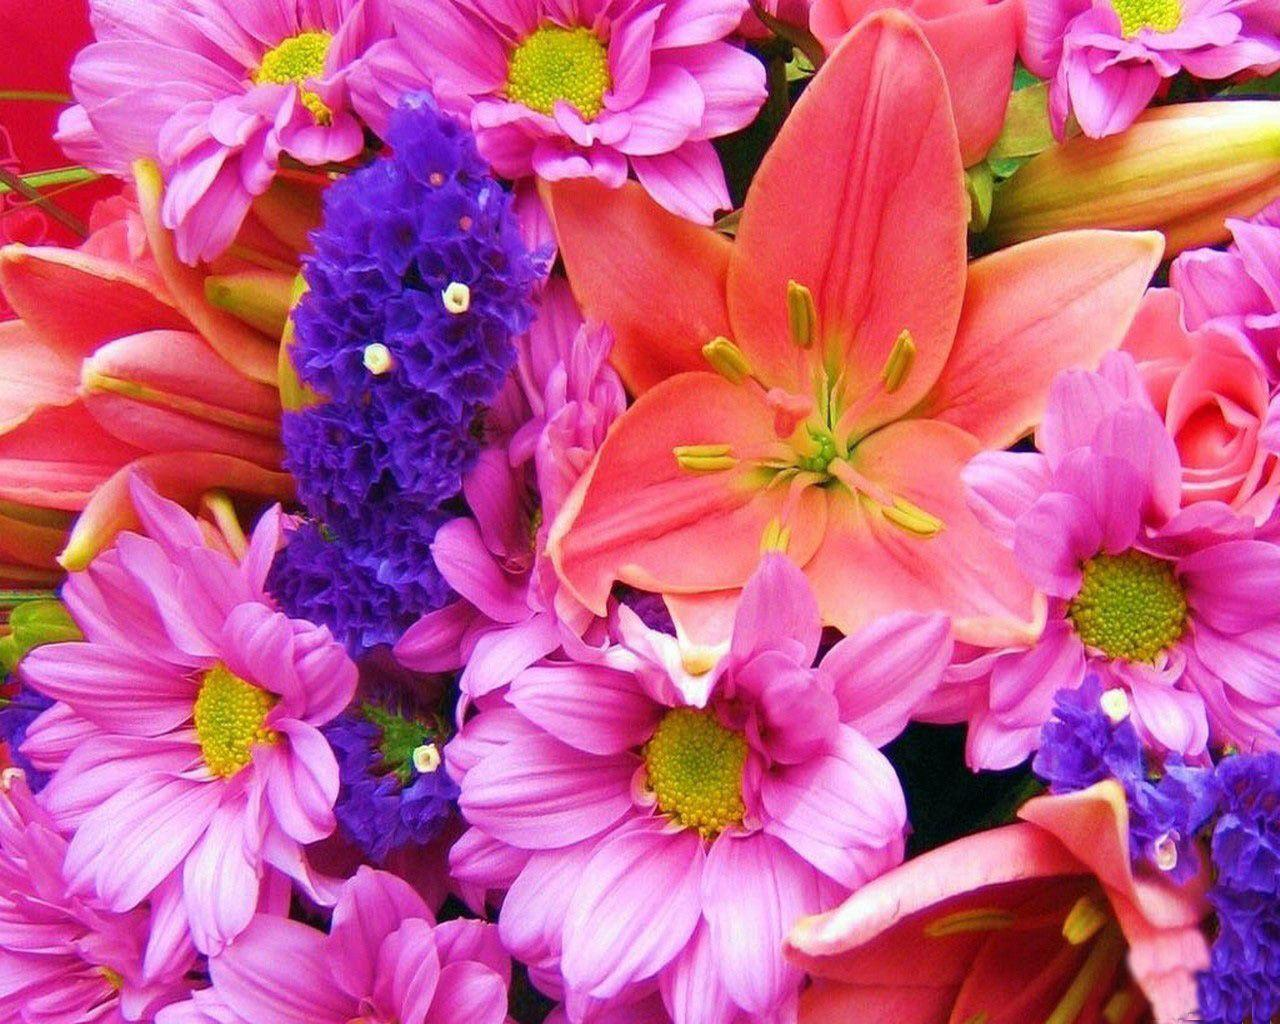 Colorful flower wallpapers wallpaper cave wallpapers for pretty colorful flower backgrounds mightylinksfo